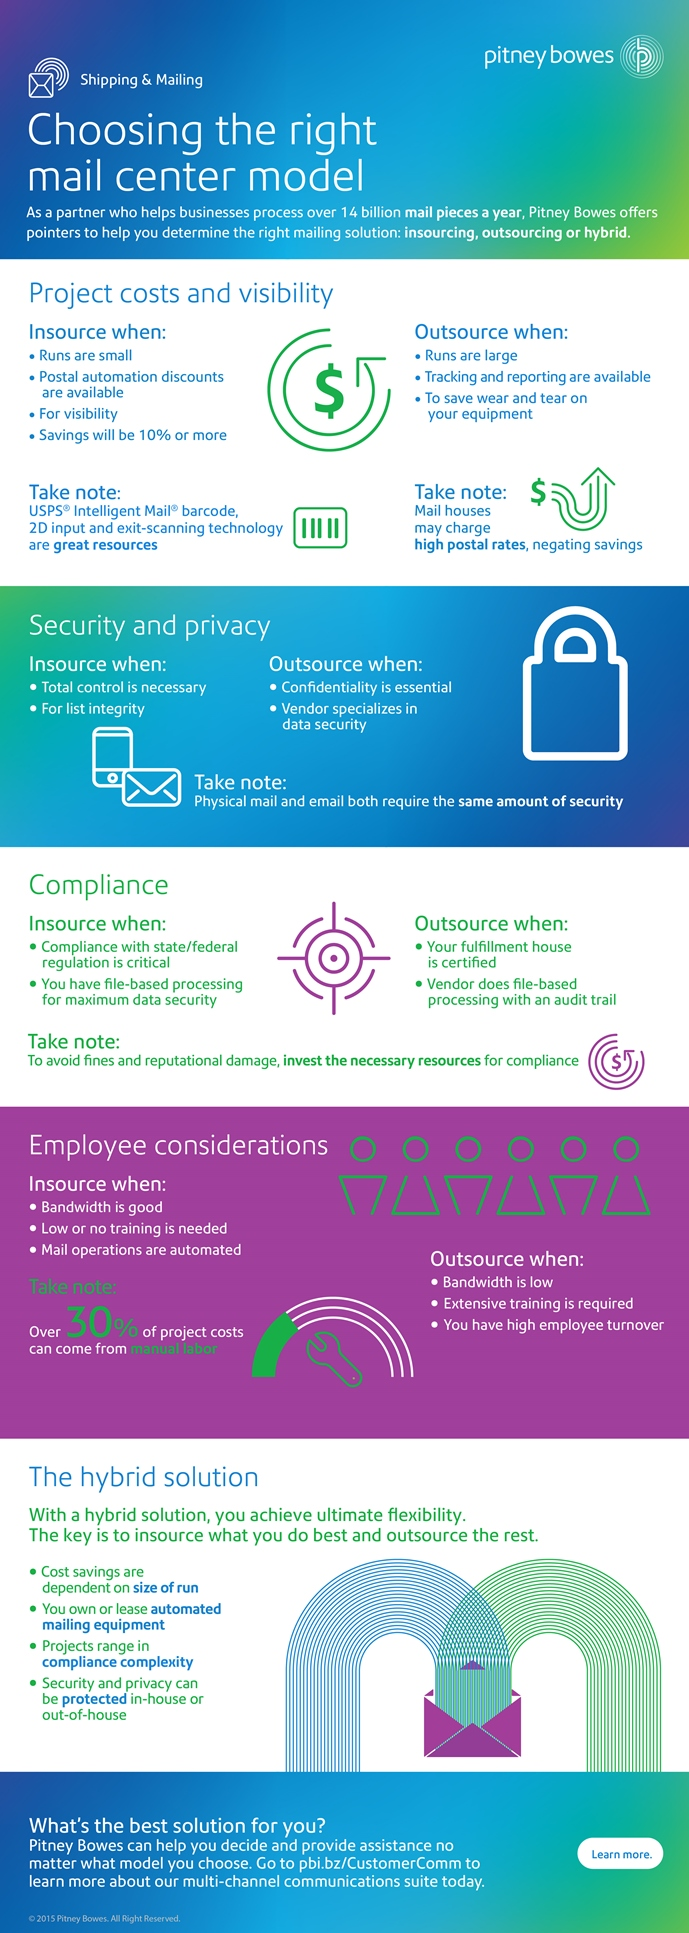 Outsourcing And Insourcing : Mail centers insourcing vs outsourcing infographic